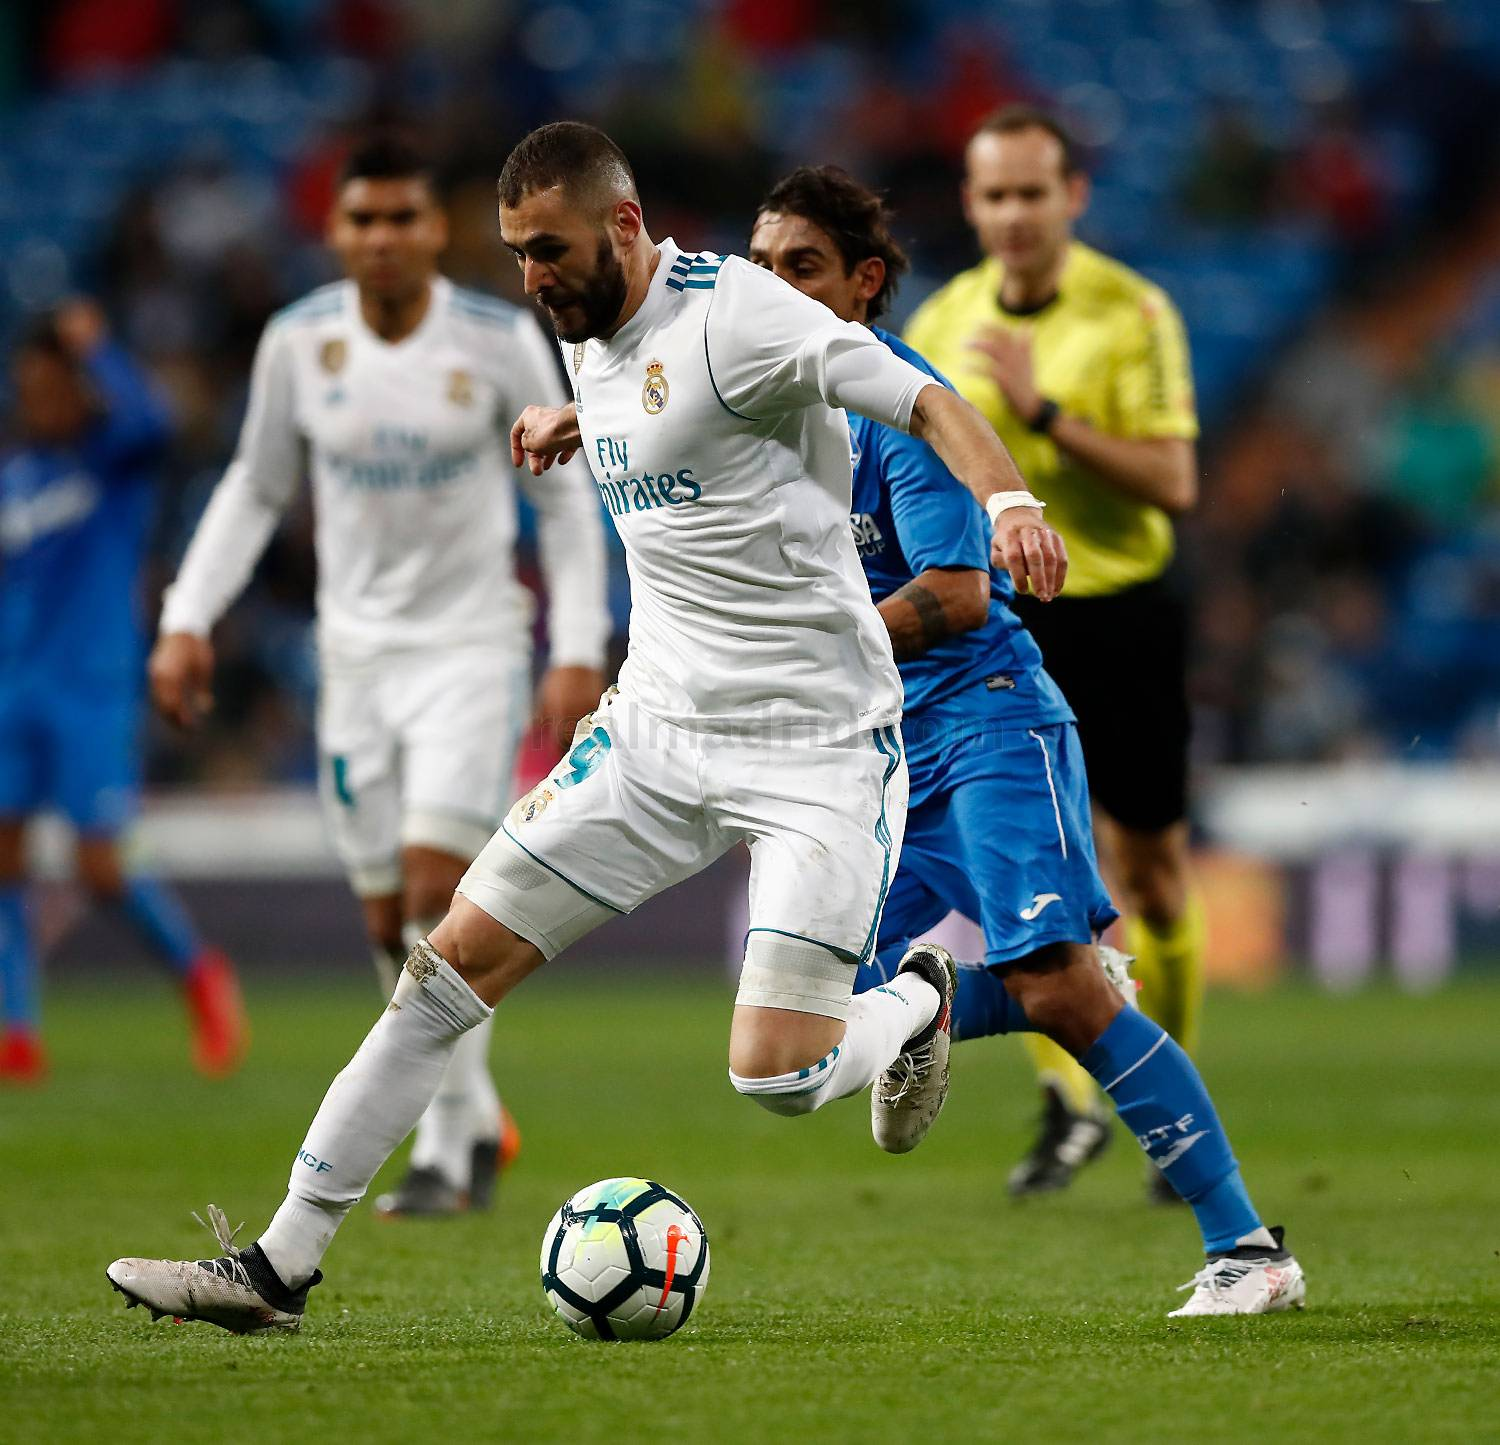 Real Madrid - Real Madrid - Getafe - 03-03-2018